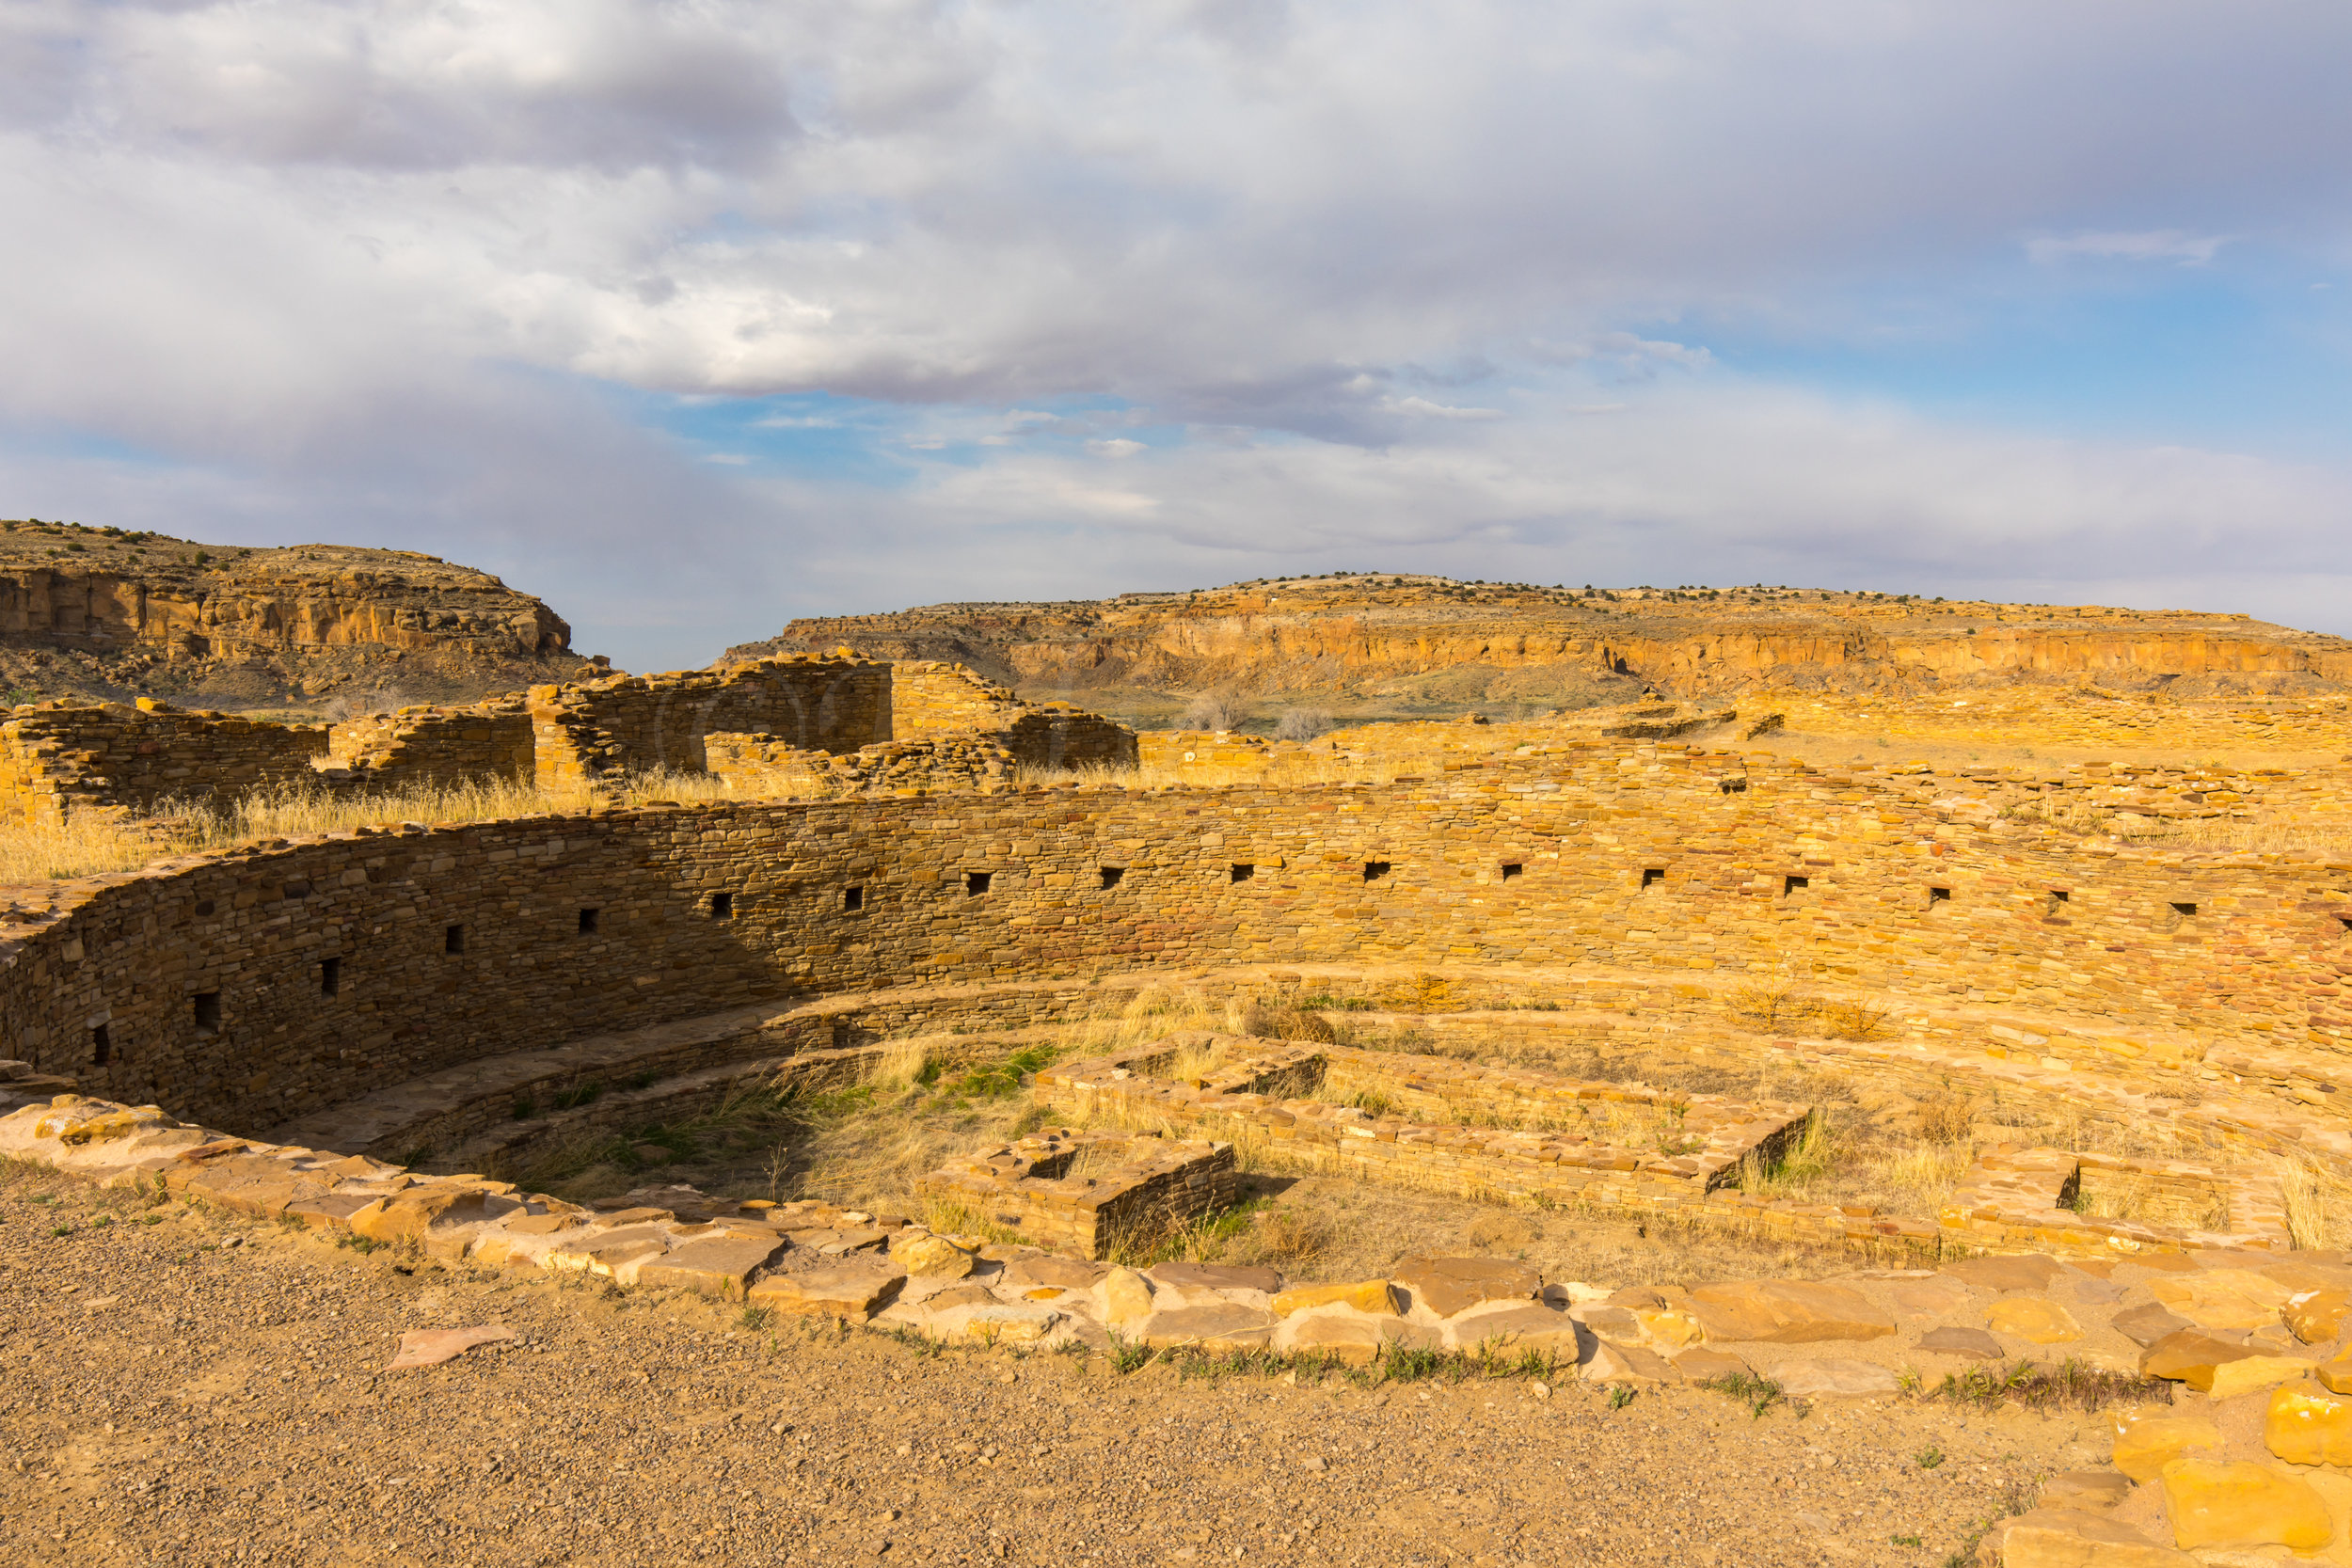 Chaco National Park, Image # 6208